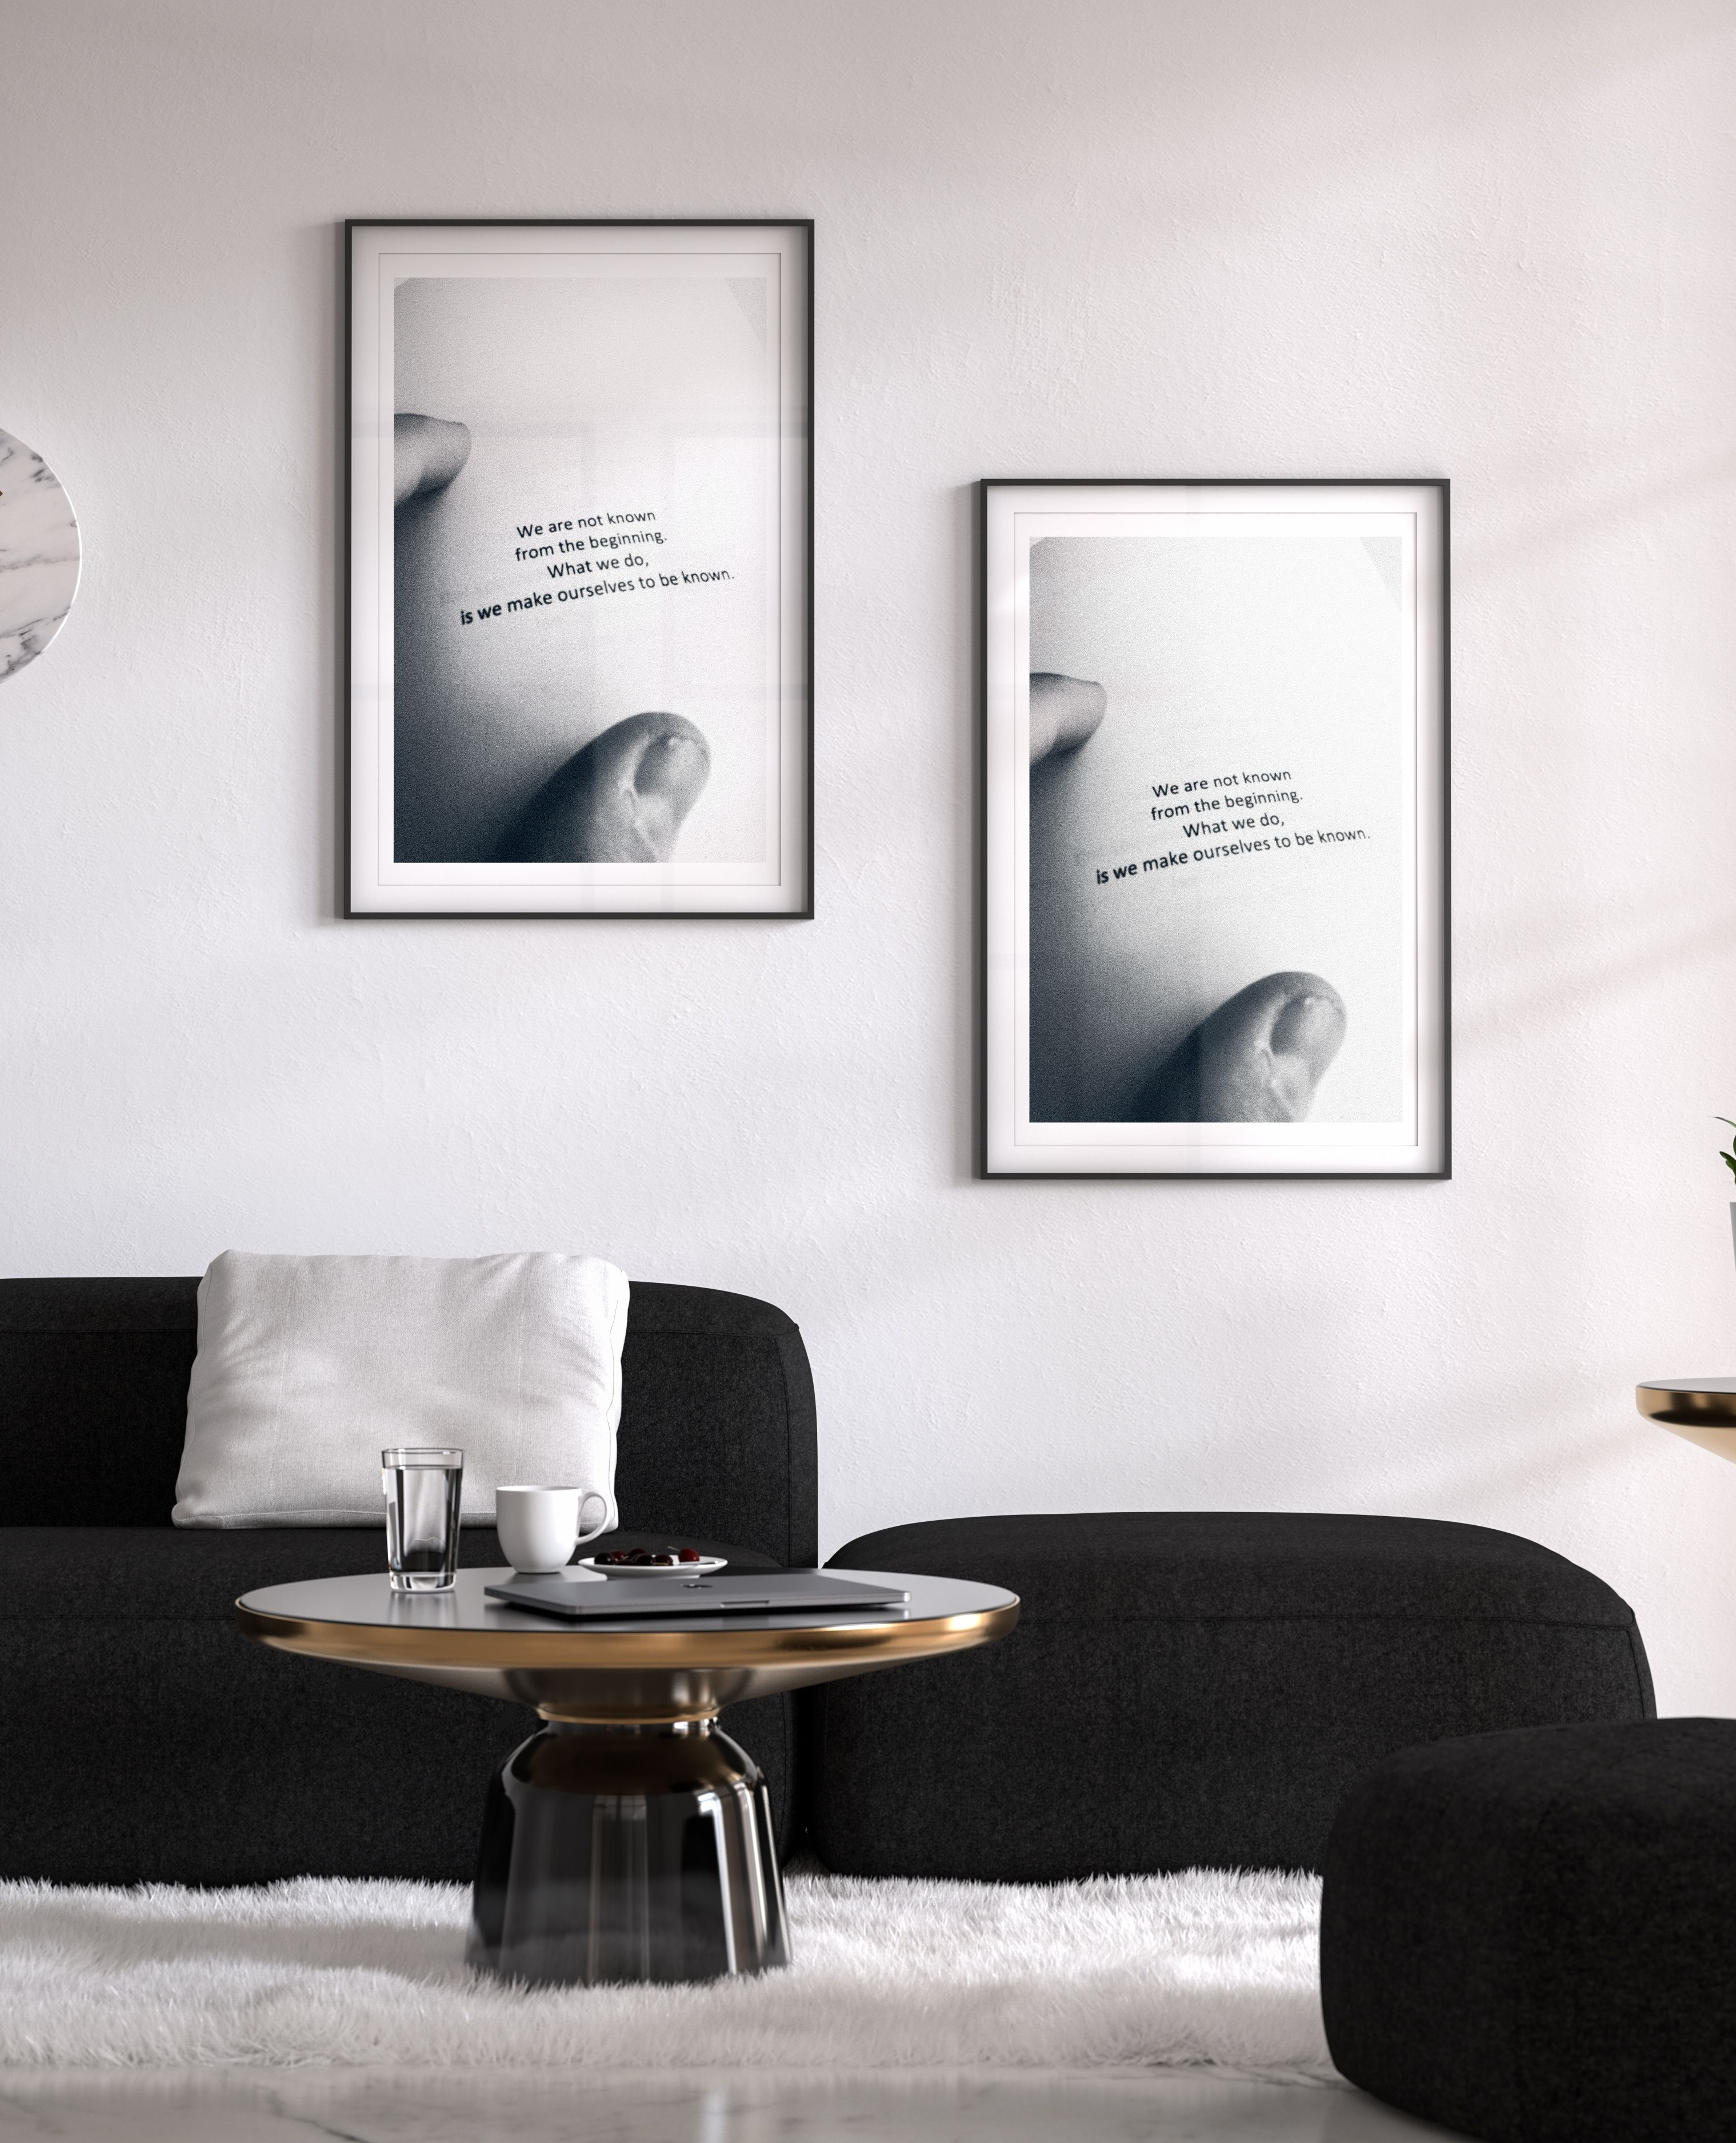 Posters/Prints from £11 - Click Photo for More Details  #poetry #quotes #quotes #motivational #love #life #art #homedecor #inspiration #wallart #artwork #poster #home #wall #design #decor #photography #inspirational #prints #wallart #artprint #b&w #walldecor #bedroomwallart